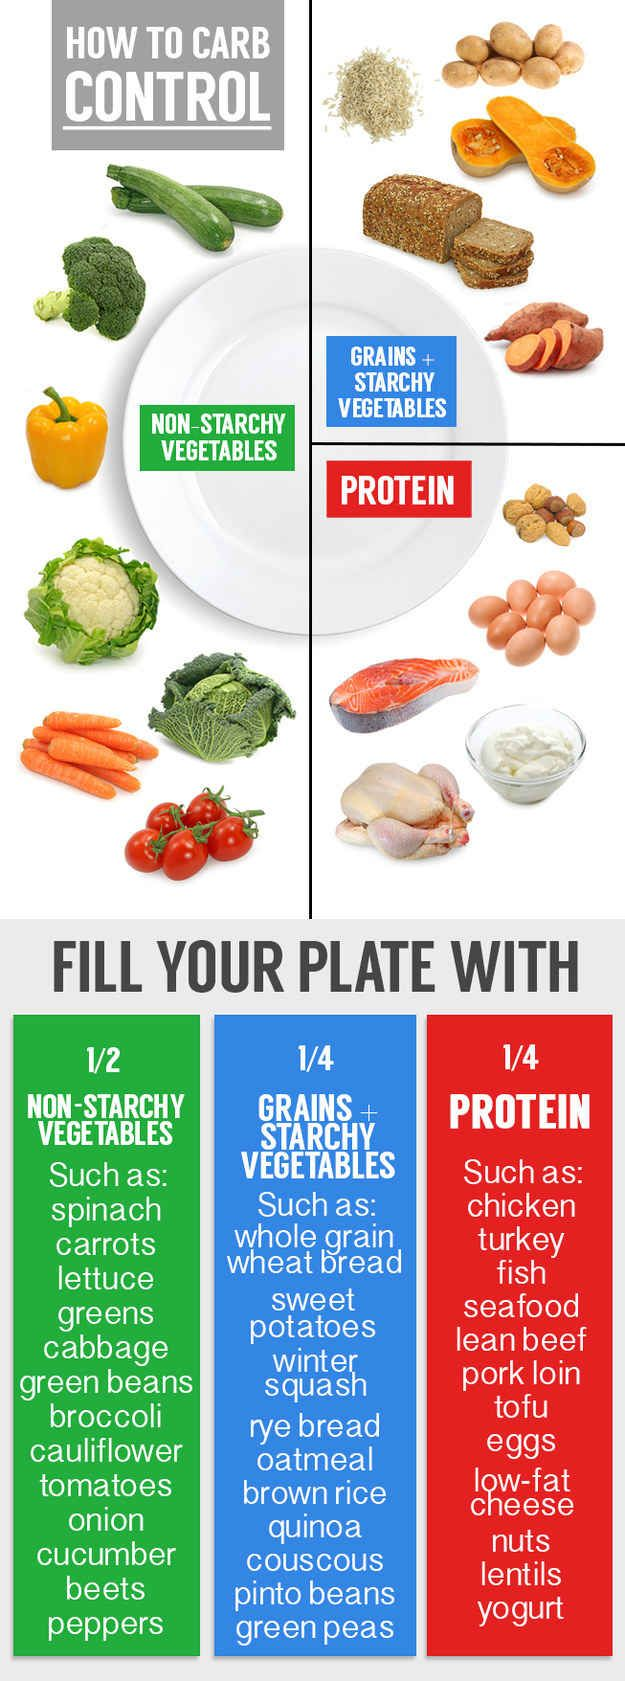 Fill your plate with vegetables (think dark greens), protein, and grains/starchy veggies